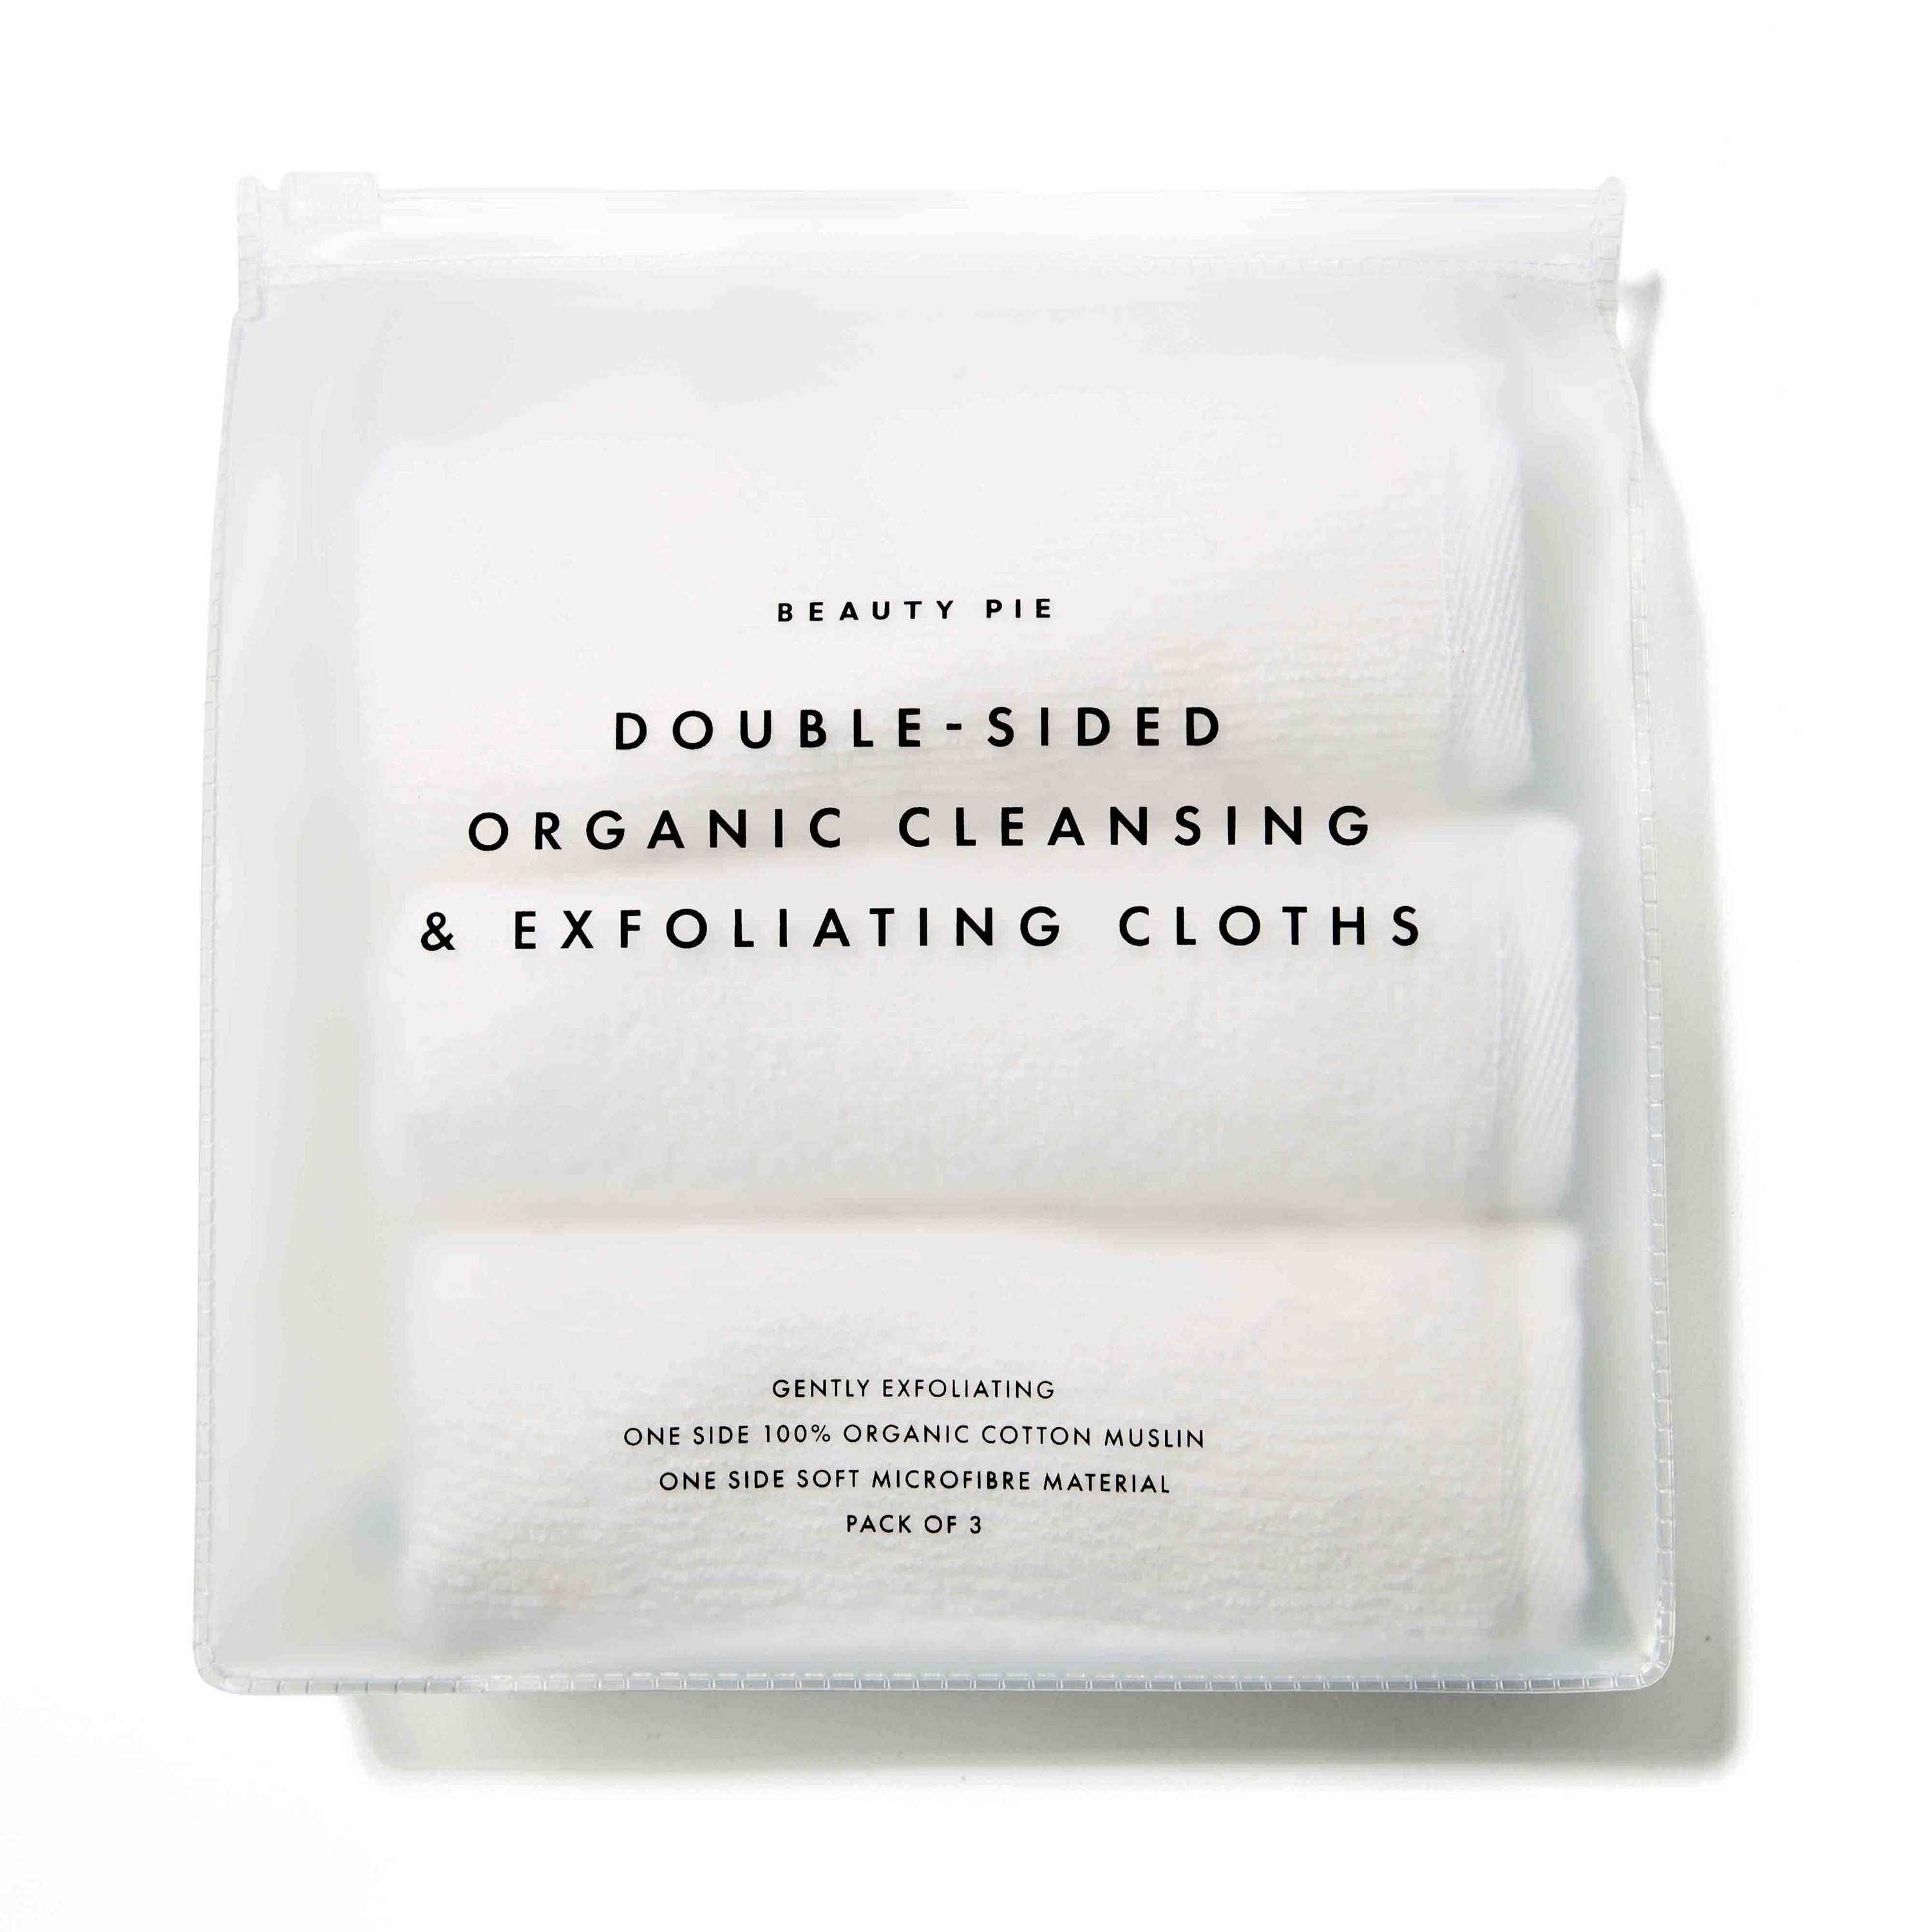 Clear package containing three white cloths.